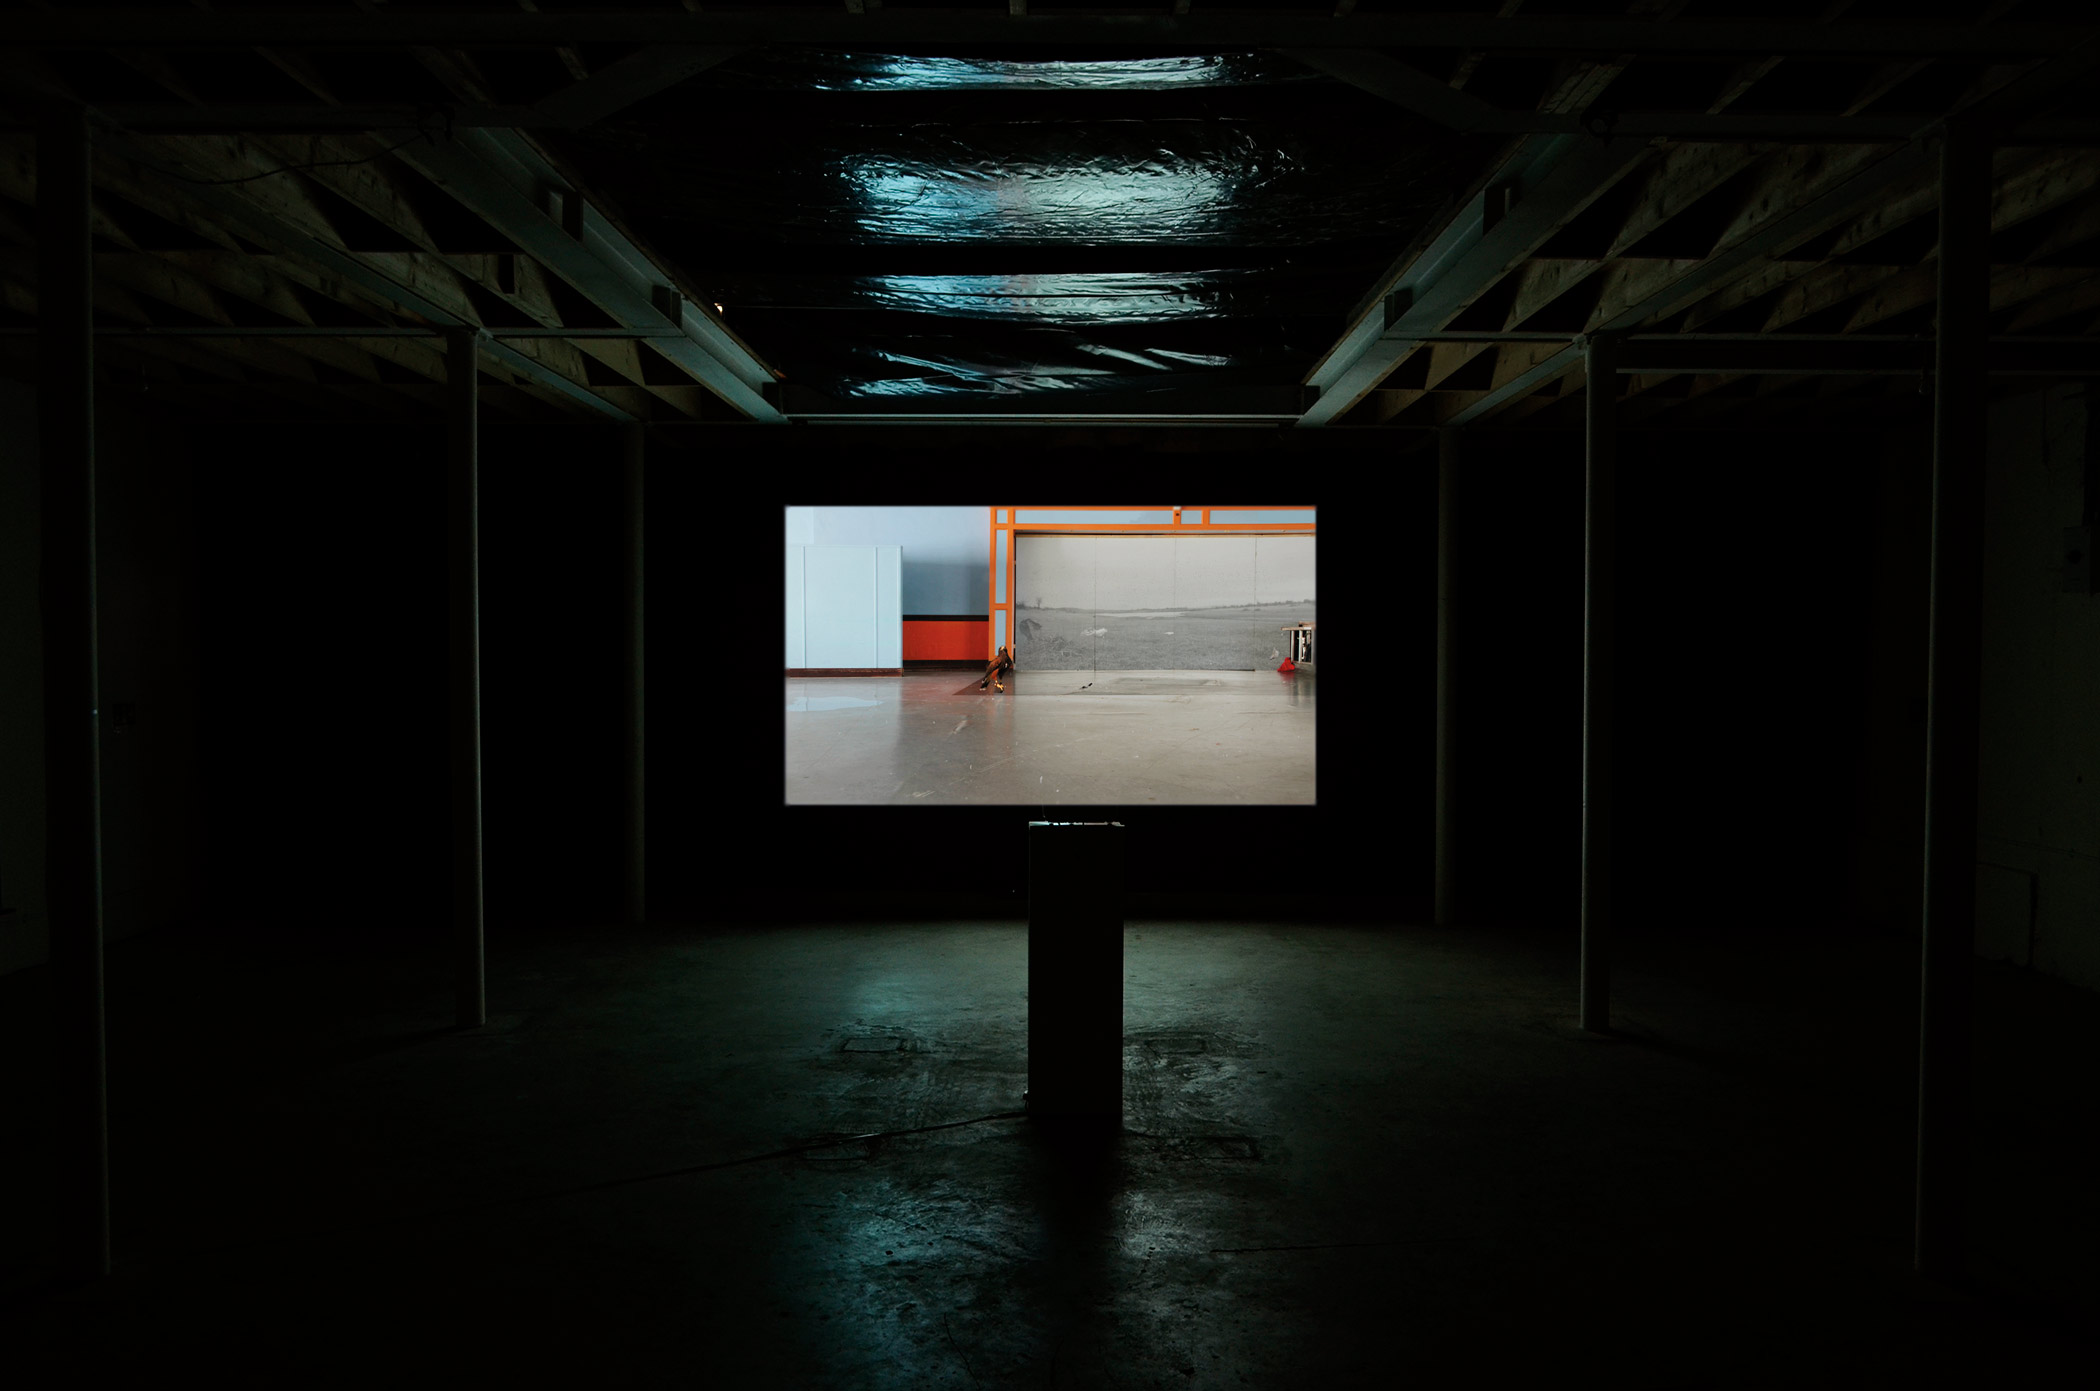 Ailbhe Ní Bhriain 'Departure' single–screen installation, video & cgi composite, colour, sound, looped, 11:48 min, sound by Pá́draig Murphy 2013/4; installation view from Ailbhe Ní Bhriain's solo exhibition at Drogheda Arts Festival, in partnership with NeXus Arts, former Methodist Schoolhouse, Drogheda, Ireland, 2015, photo by Els Borghart.